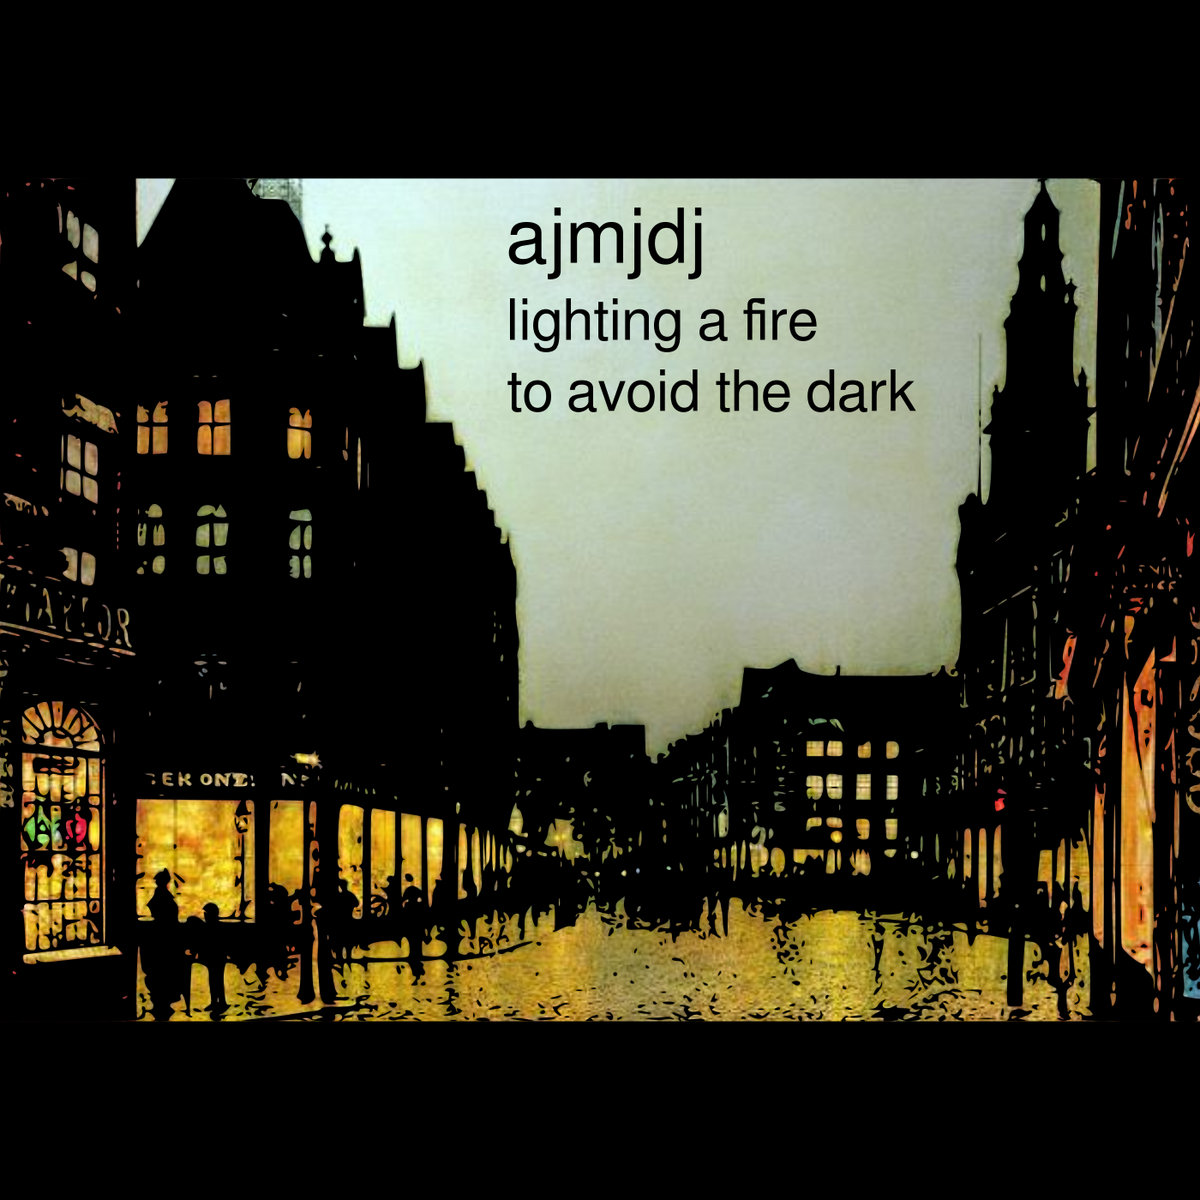 ajmjdj - lighting a fire to avoid the dark [lofi/electro]